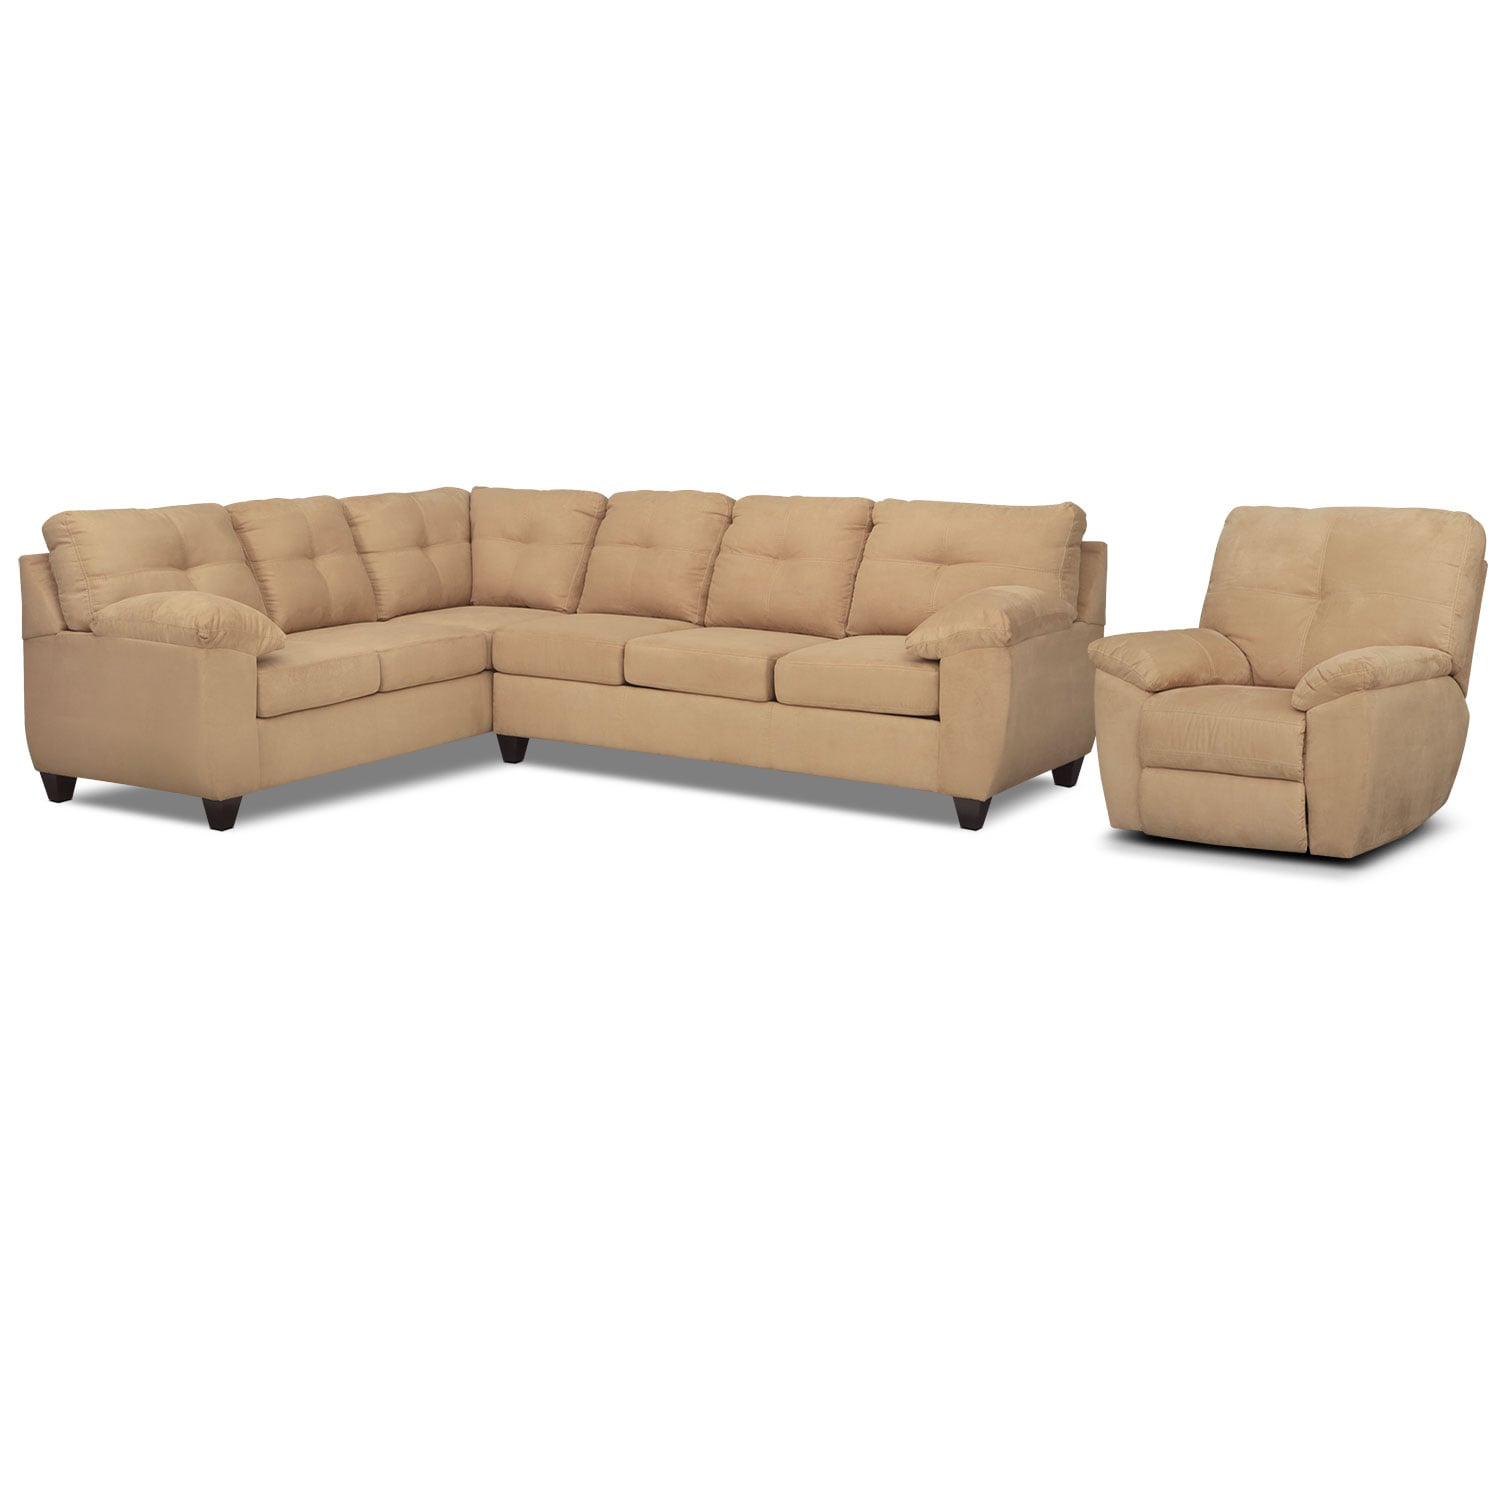 Living Room Furniture - Rialto Camel 2 Pc. Left-Facing Sofa Sectional and Glider Recliner